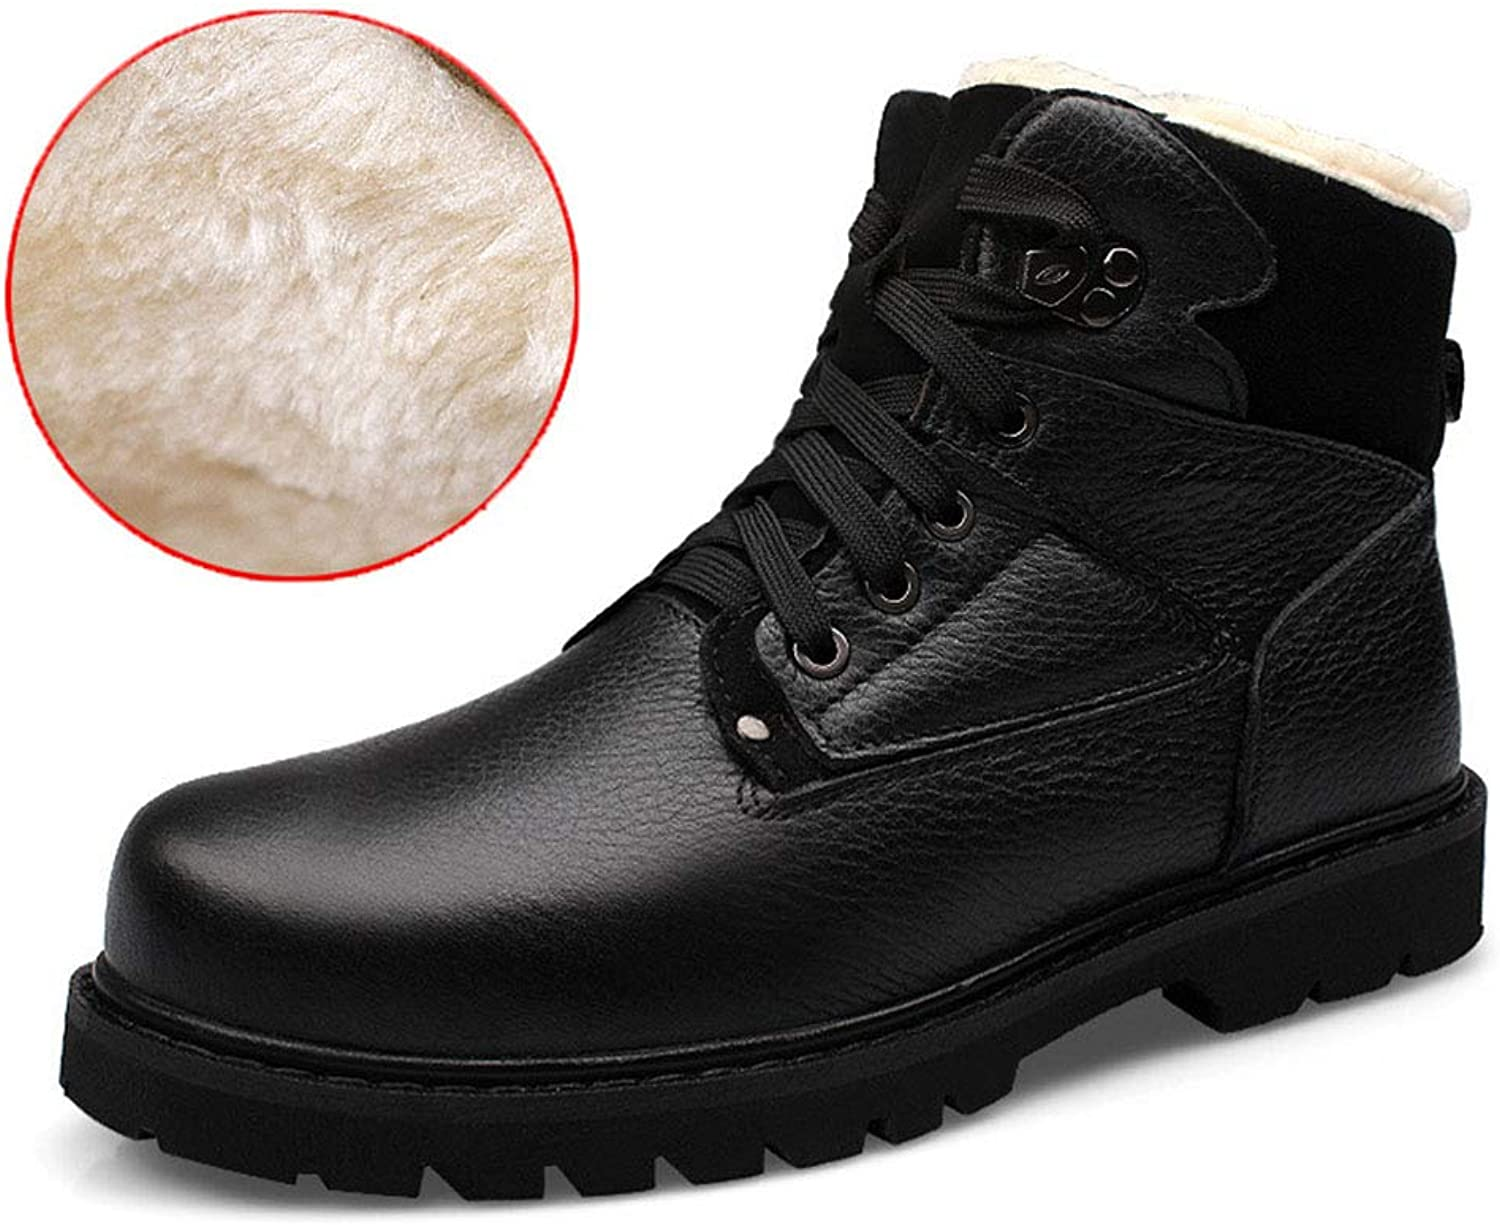 Men's Leather shoes Plus Velvet Keep Warm High-top Non Slip Martin Boots Motorcycle Boots Outdoor shoes (color   B, Size   40)